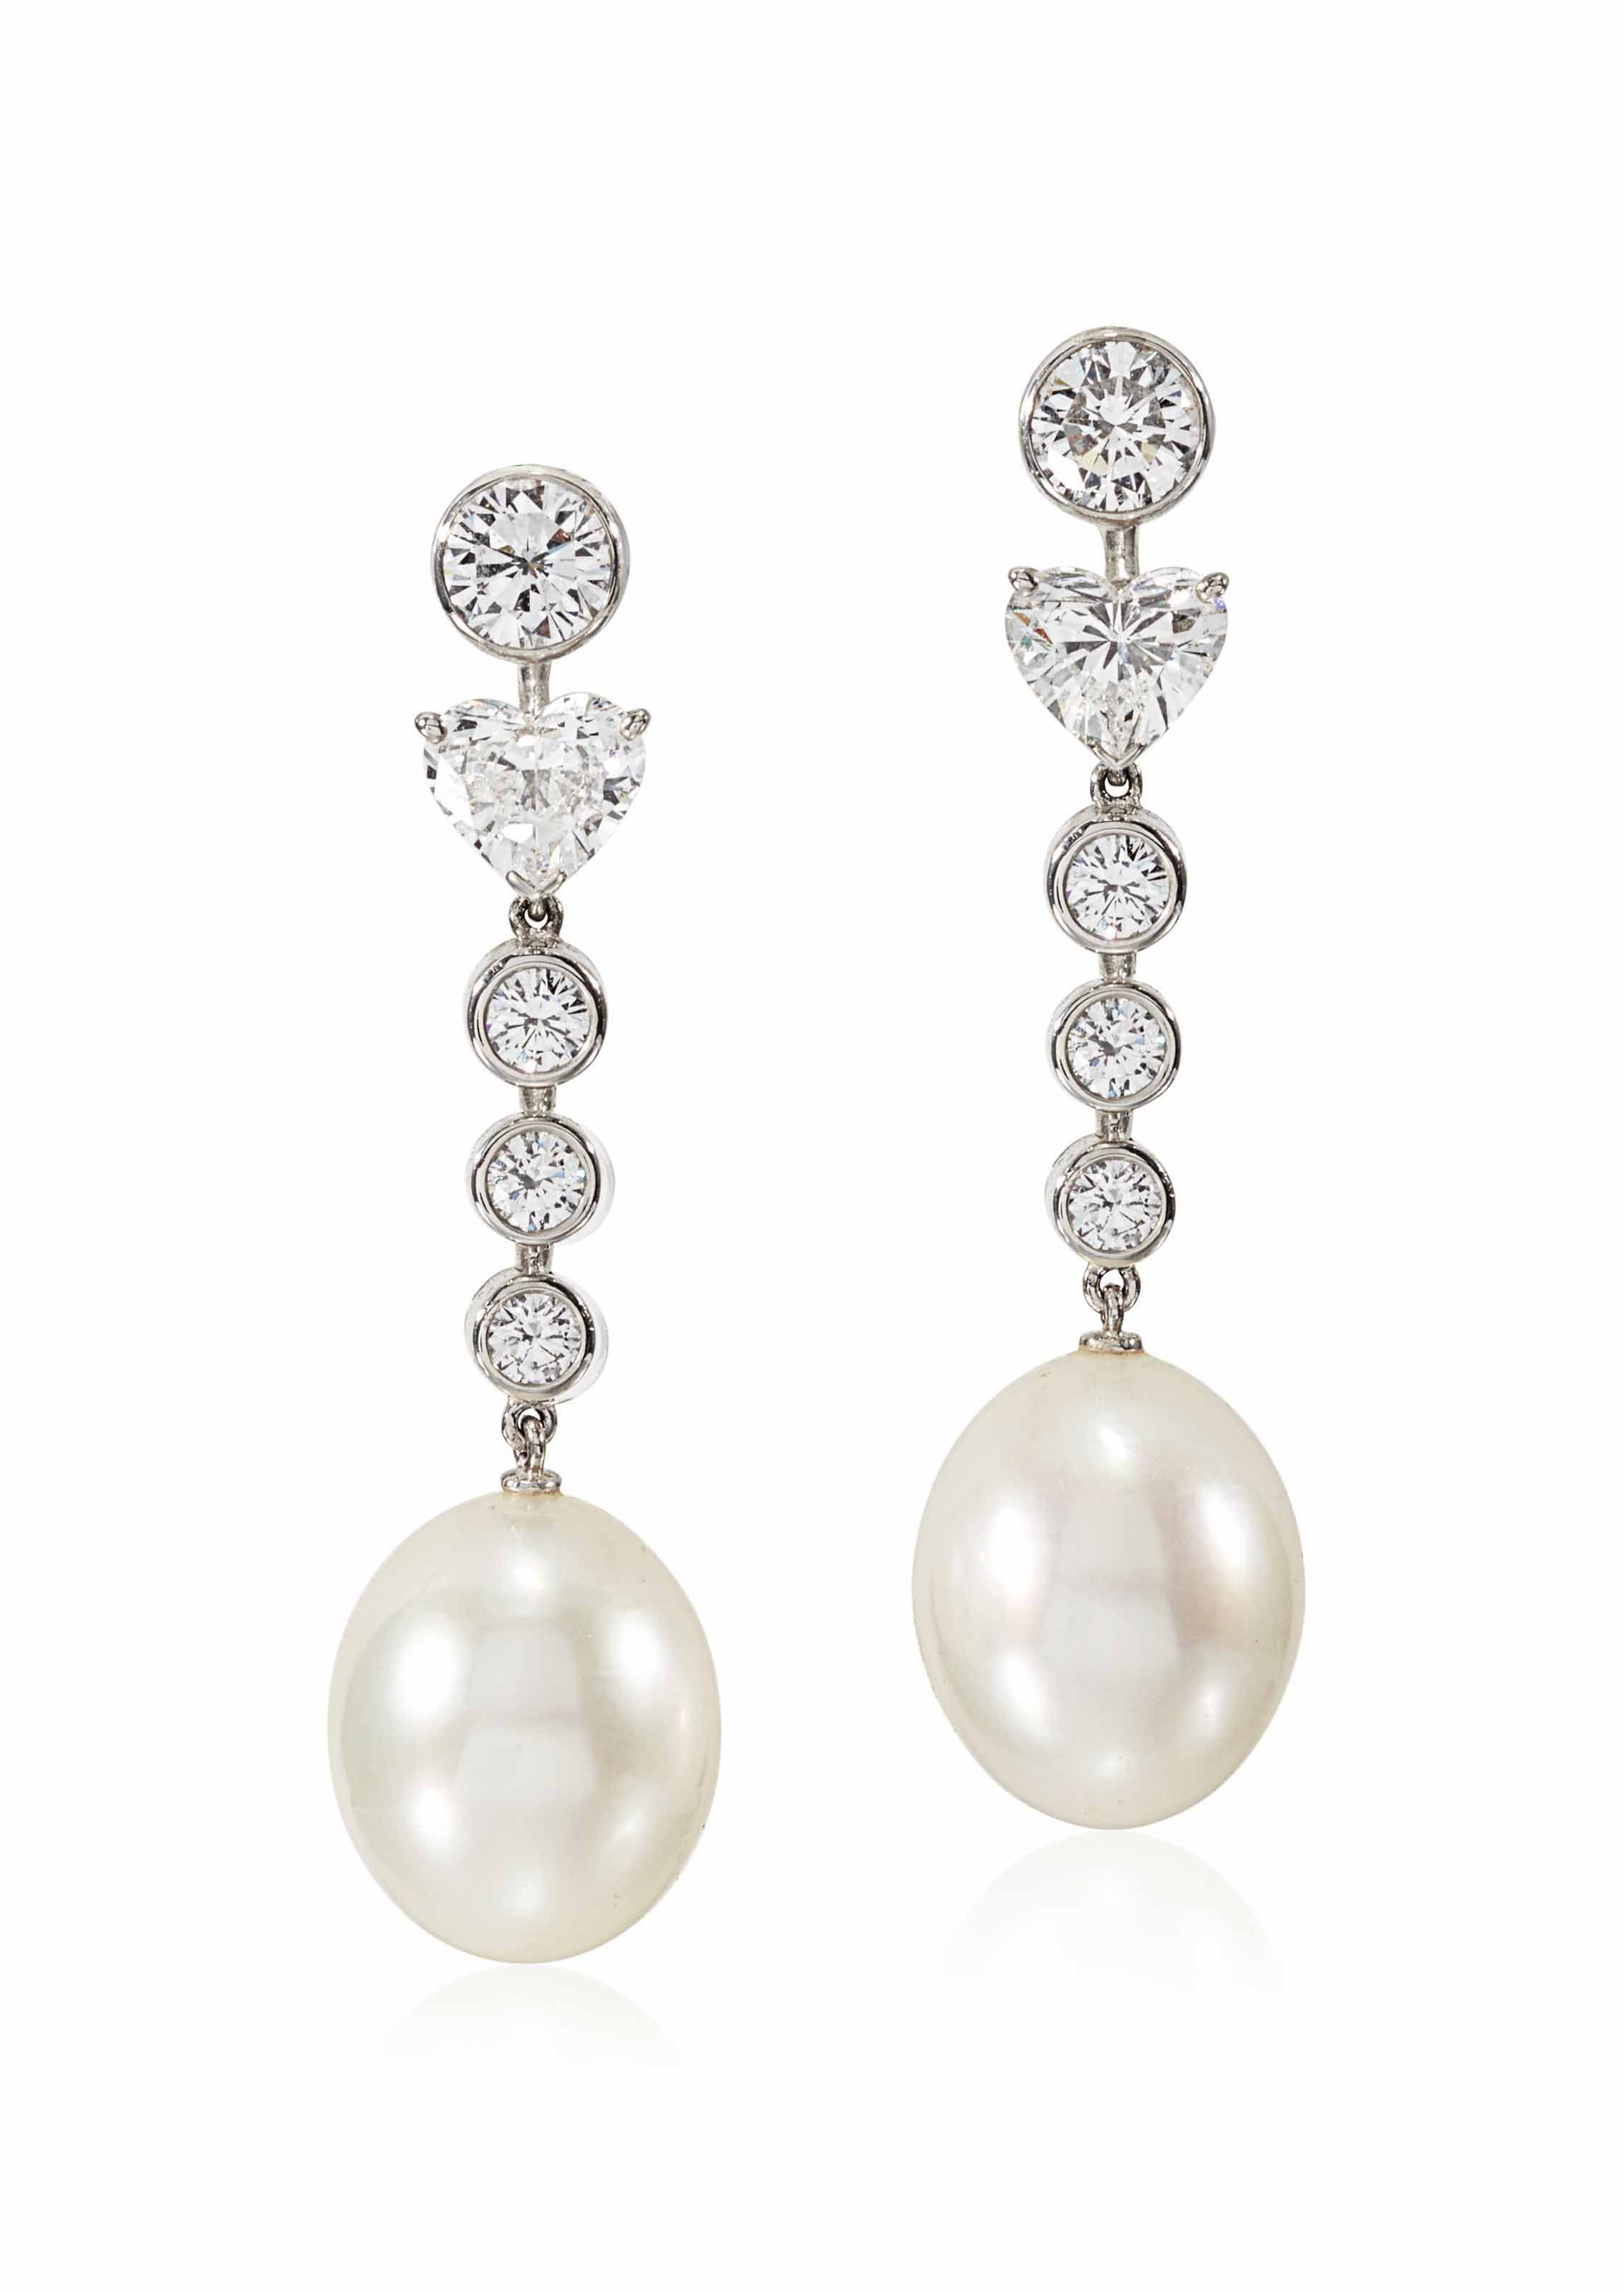 CULTURED PEARL AND DIAMOND CALIN EARRINGS CARTIER